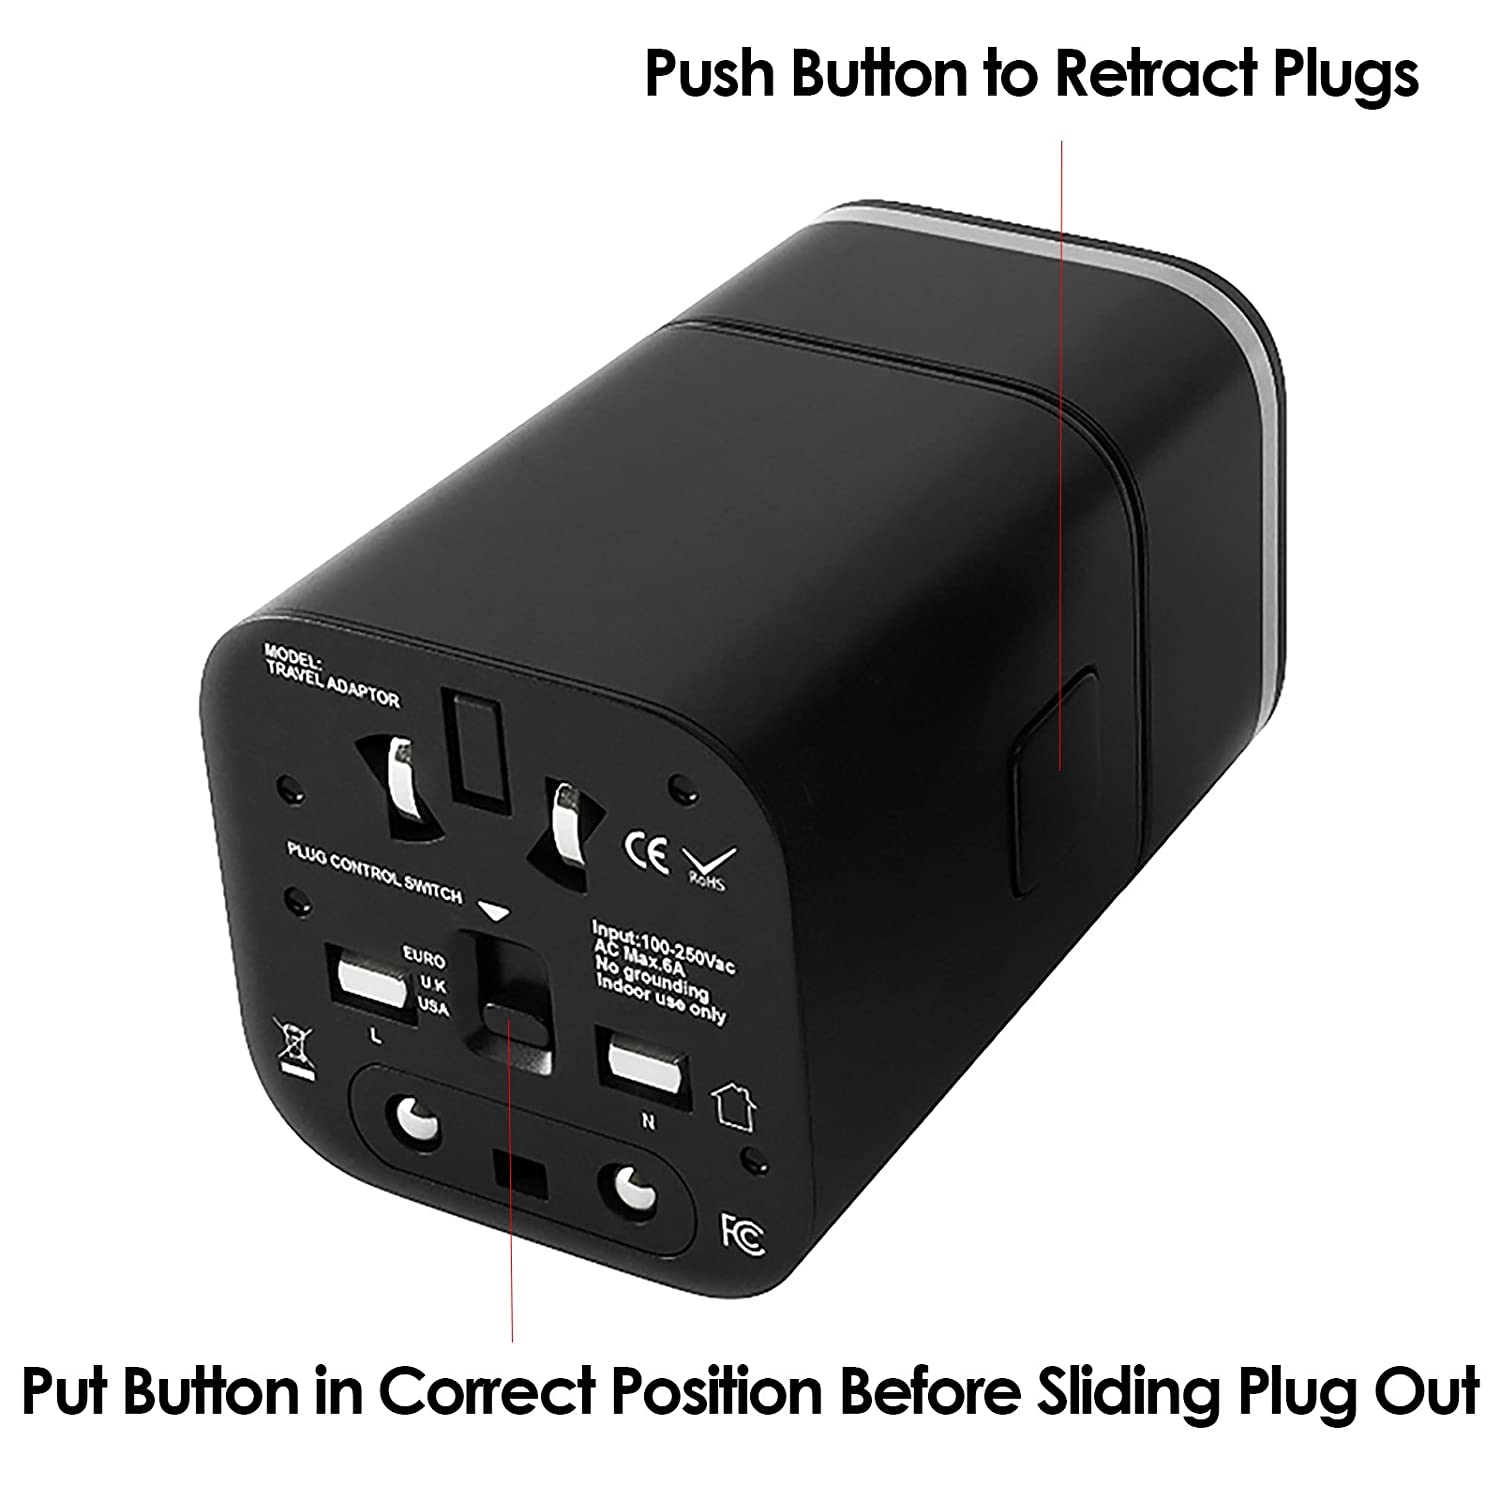 Venture 4th Worldwide Travel Adapter Charger All In One Electrical Plug Outlet And Voltage Information For Australia Dual Usb Charging Ports Uk Europe Black Cell Phones Accessories